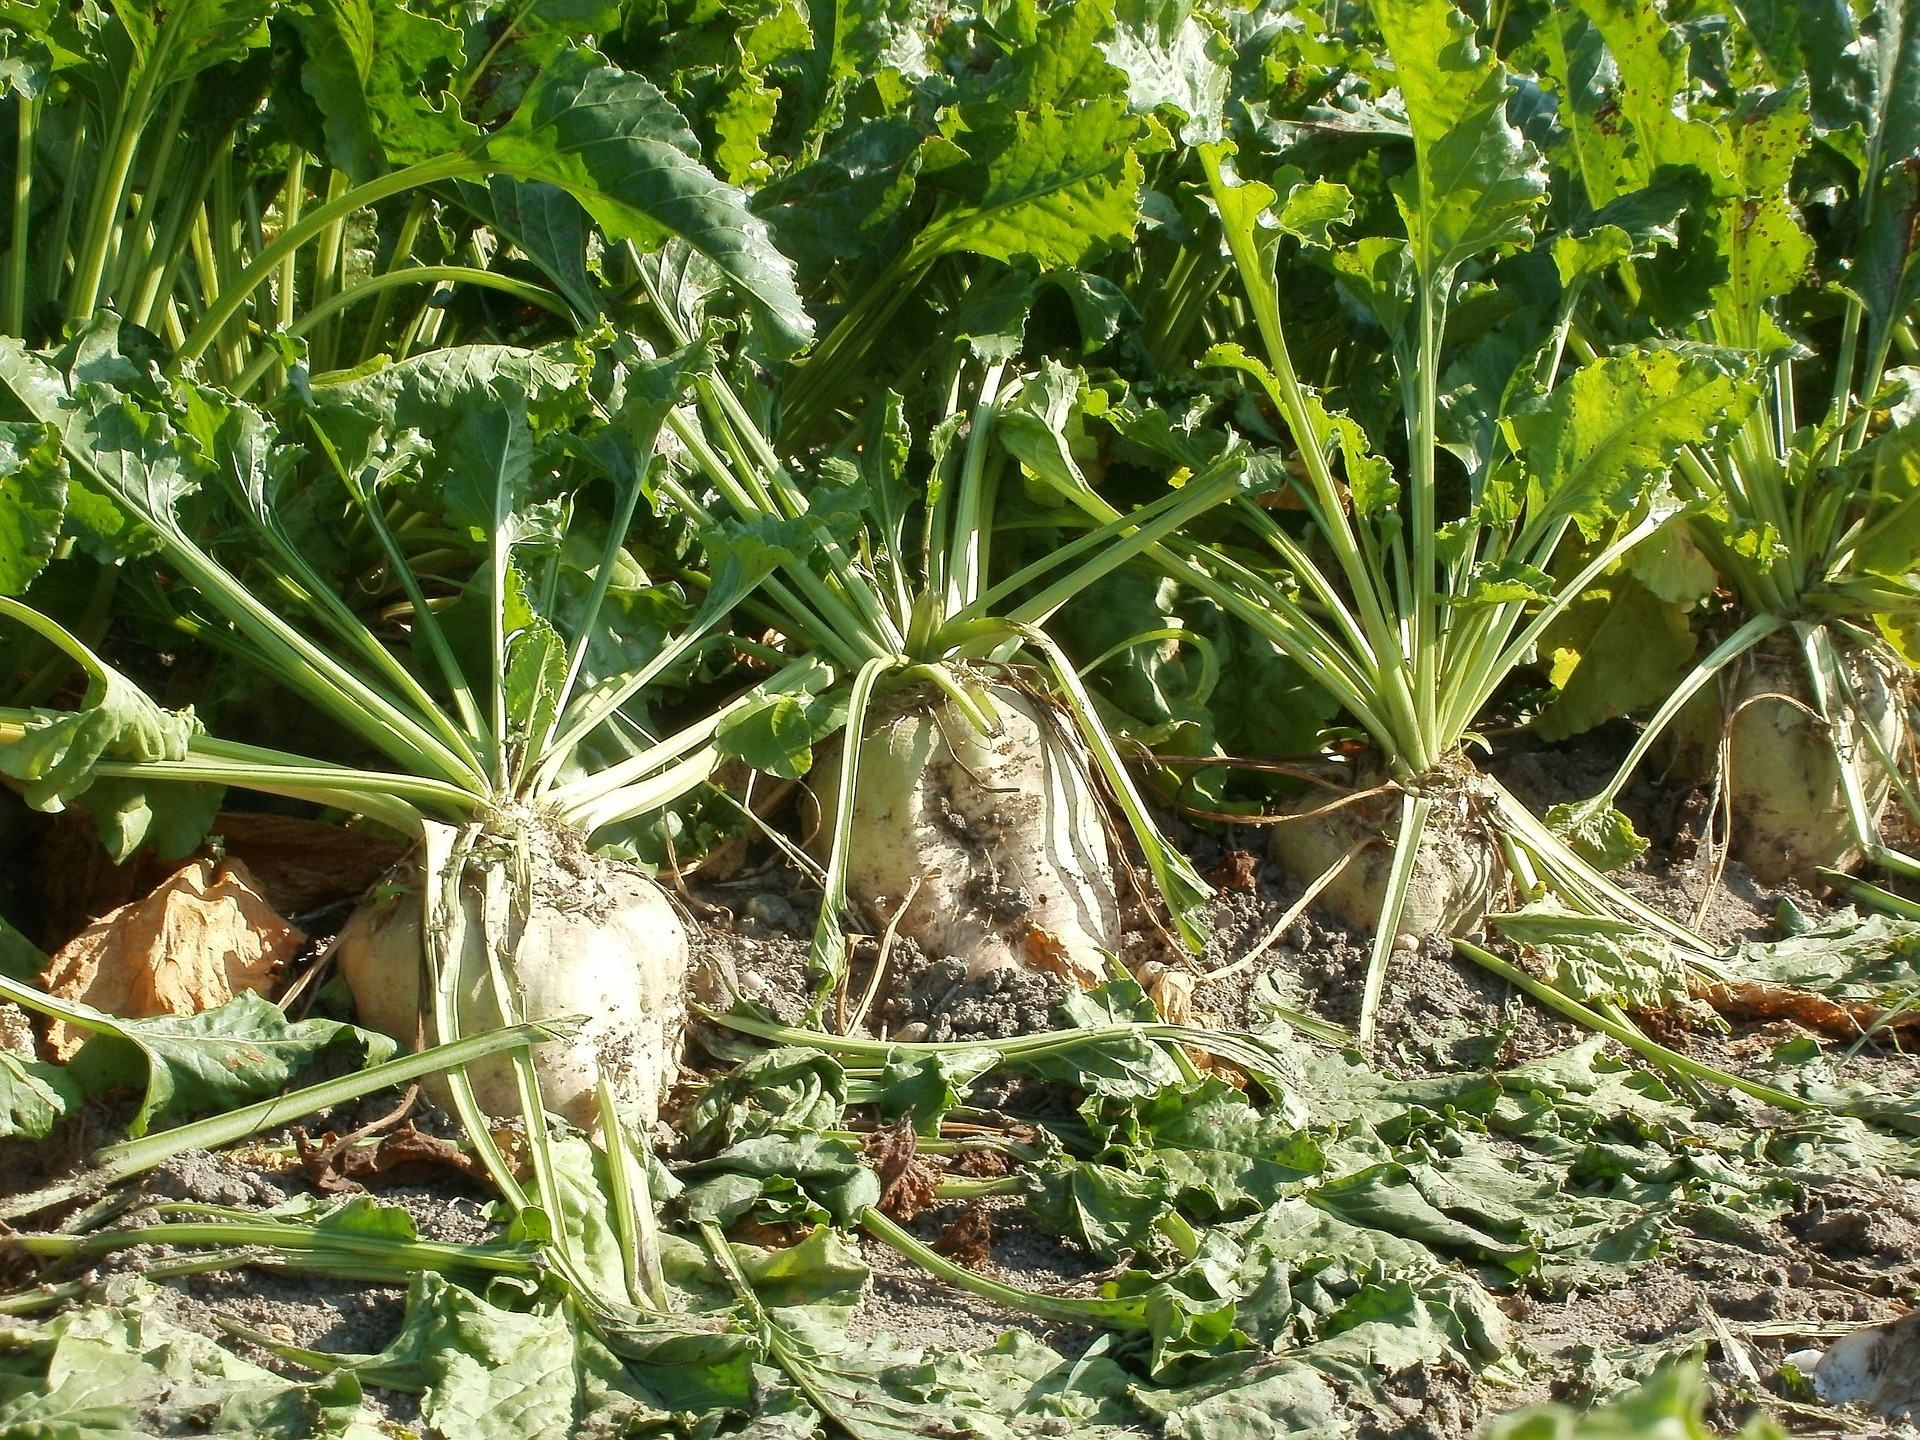 effects of the 1884 beet sugar Potassium and sodium both have similar effects on the growth, development, and productivity of sugar beet they can both play an important role in the regulation of water within the plant via controlling water loss from the stomata on the leaf surface.